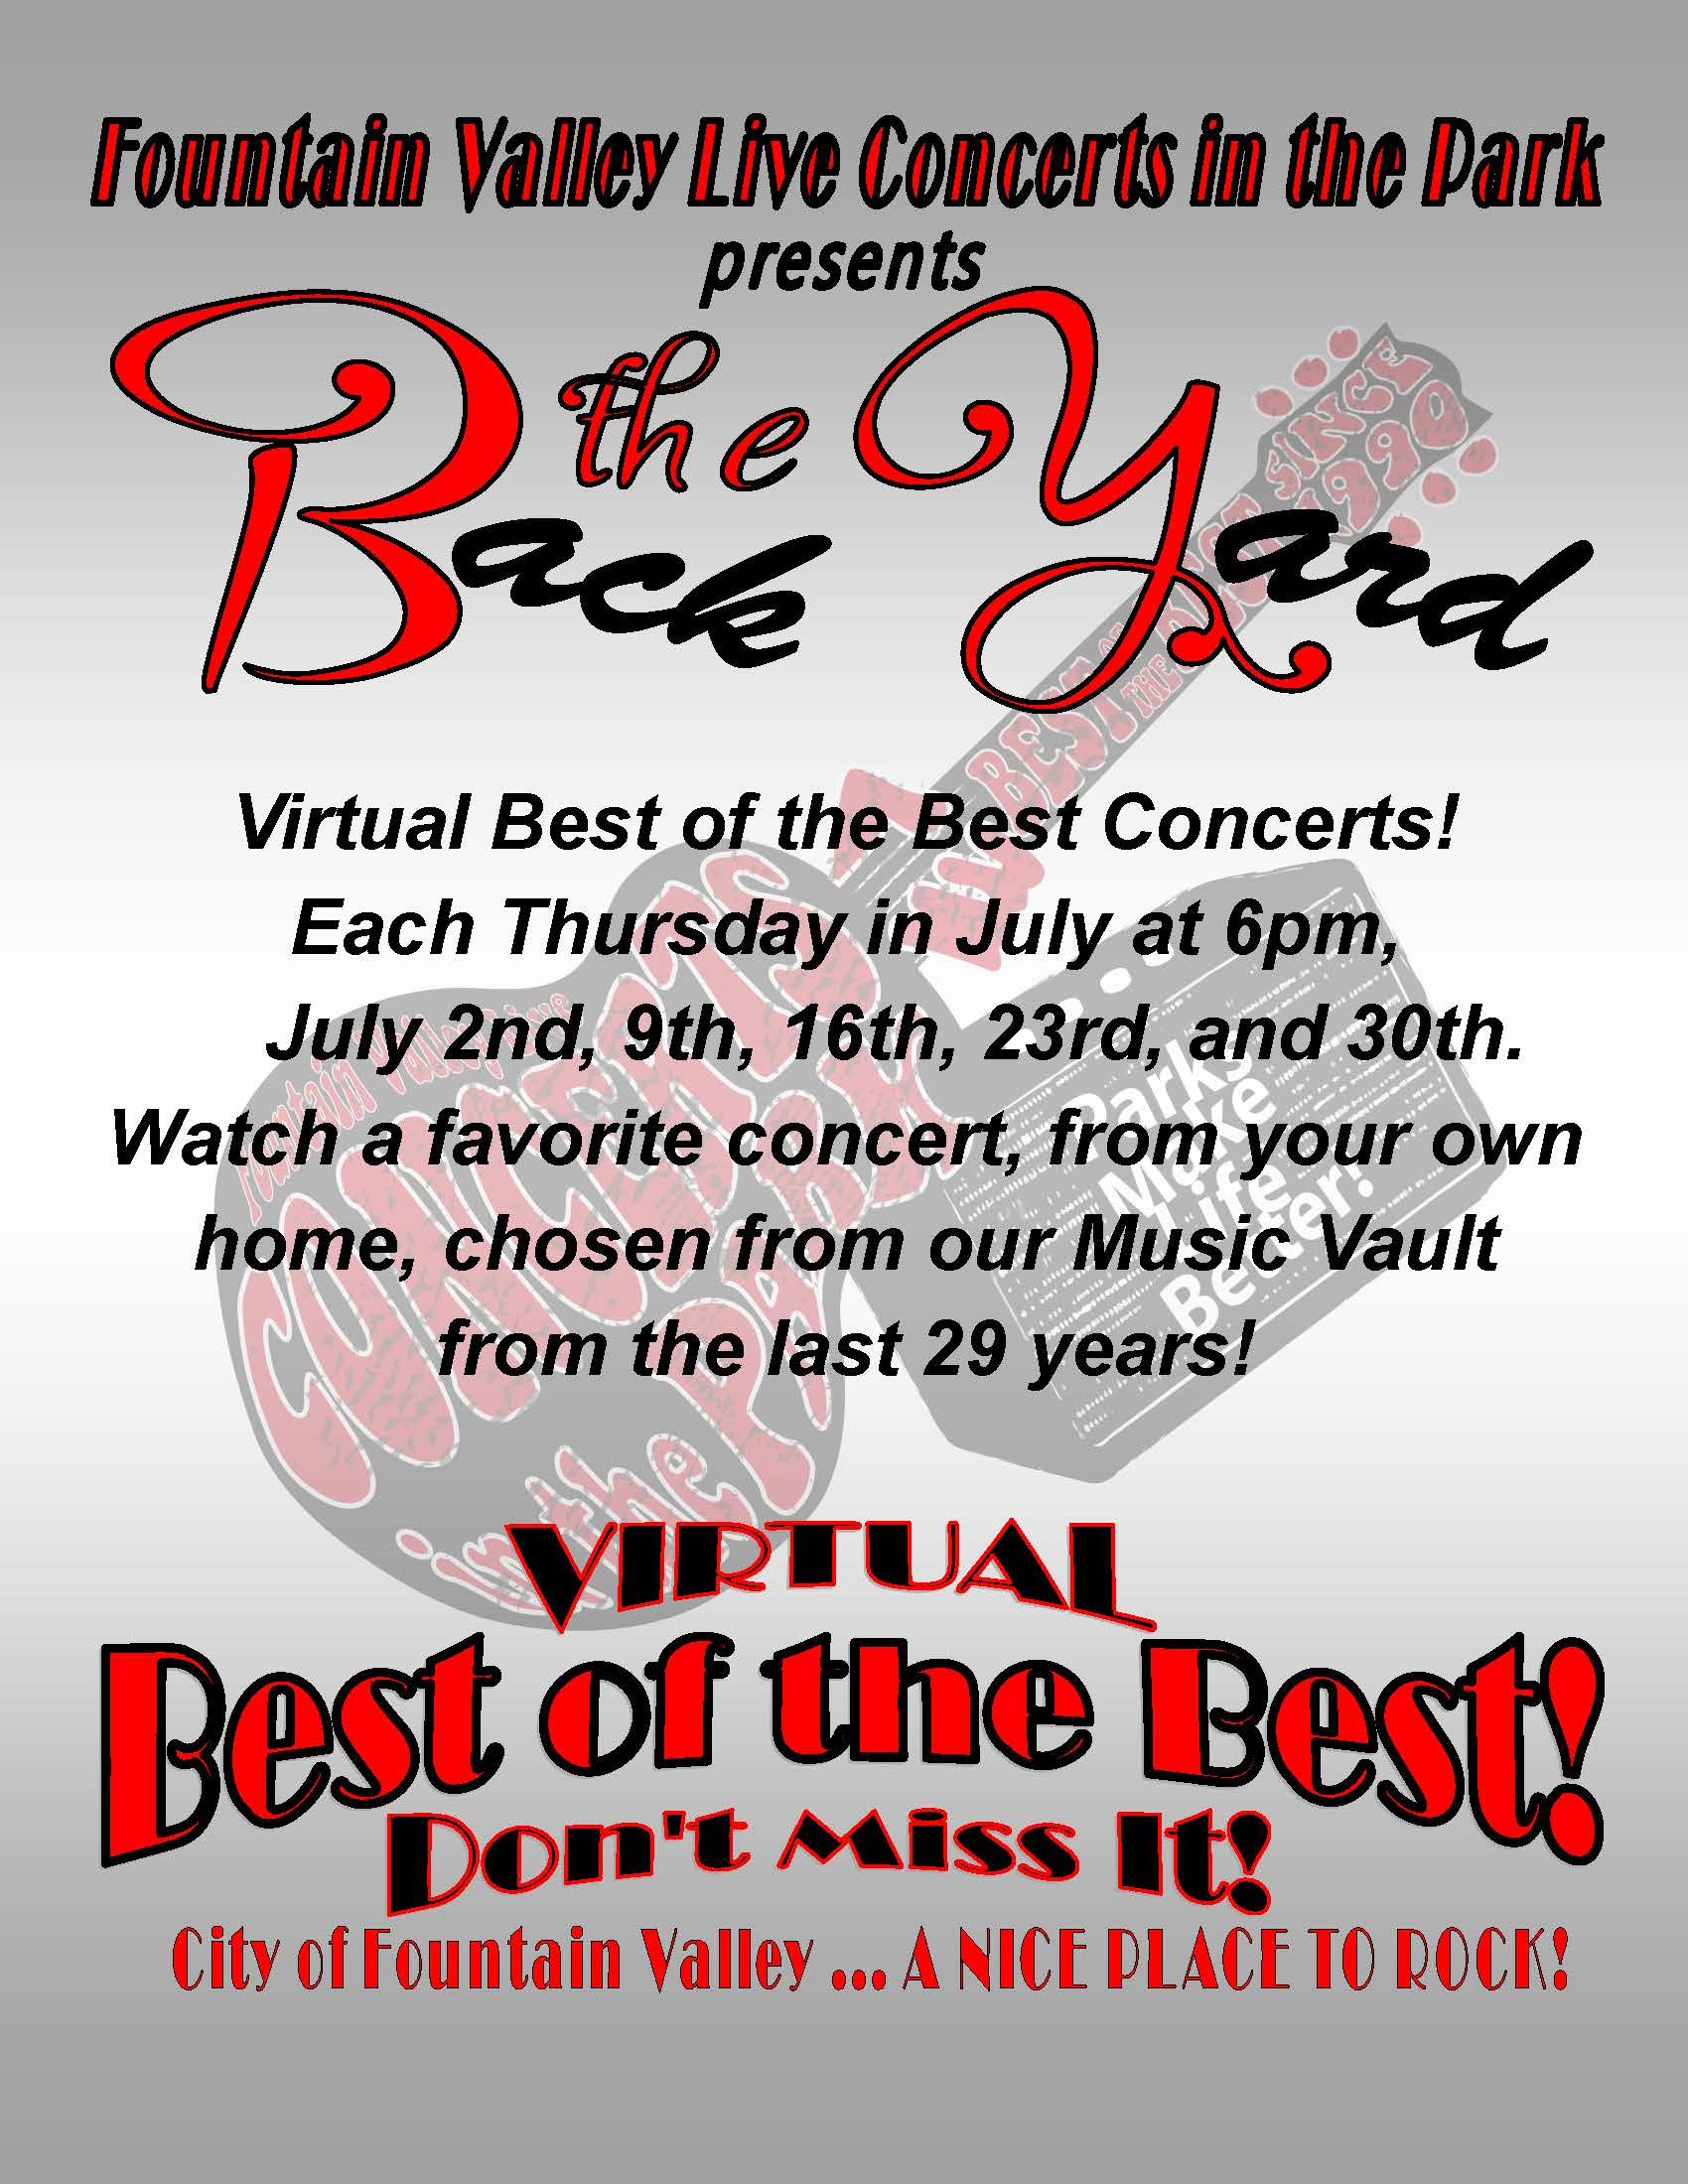 Virtual Best of the Best Concerts Flyer 6-16-2020